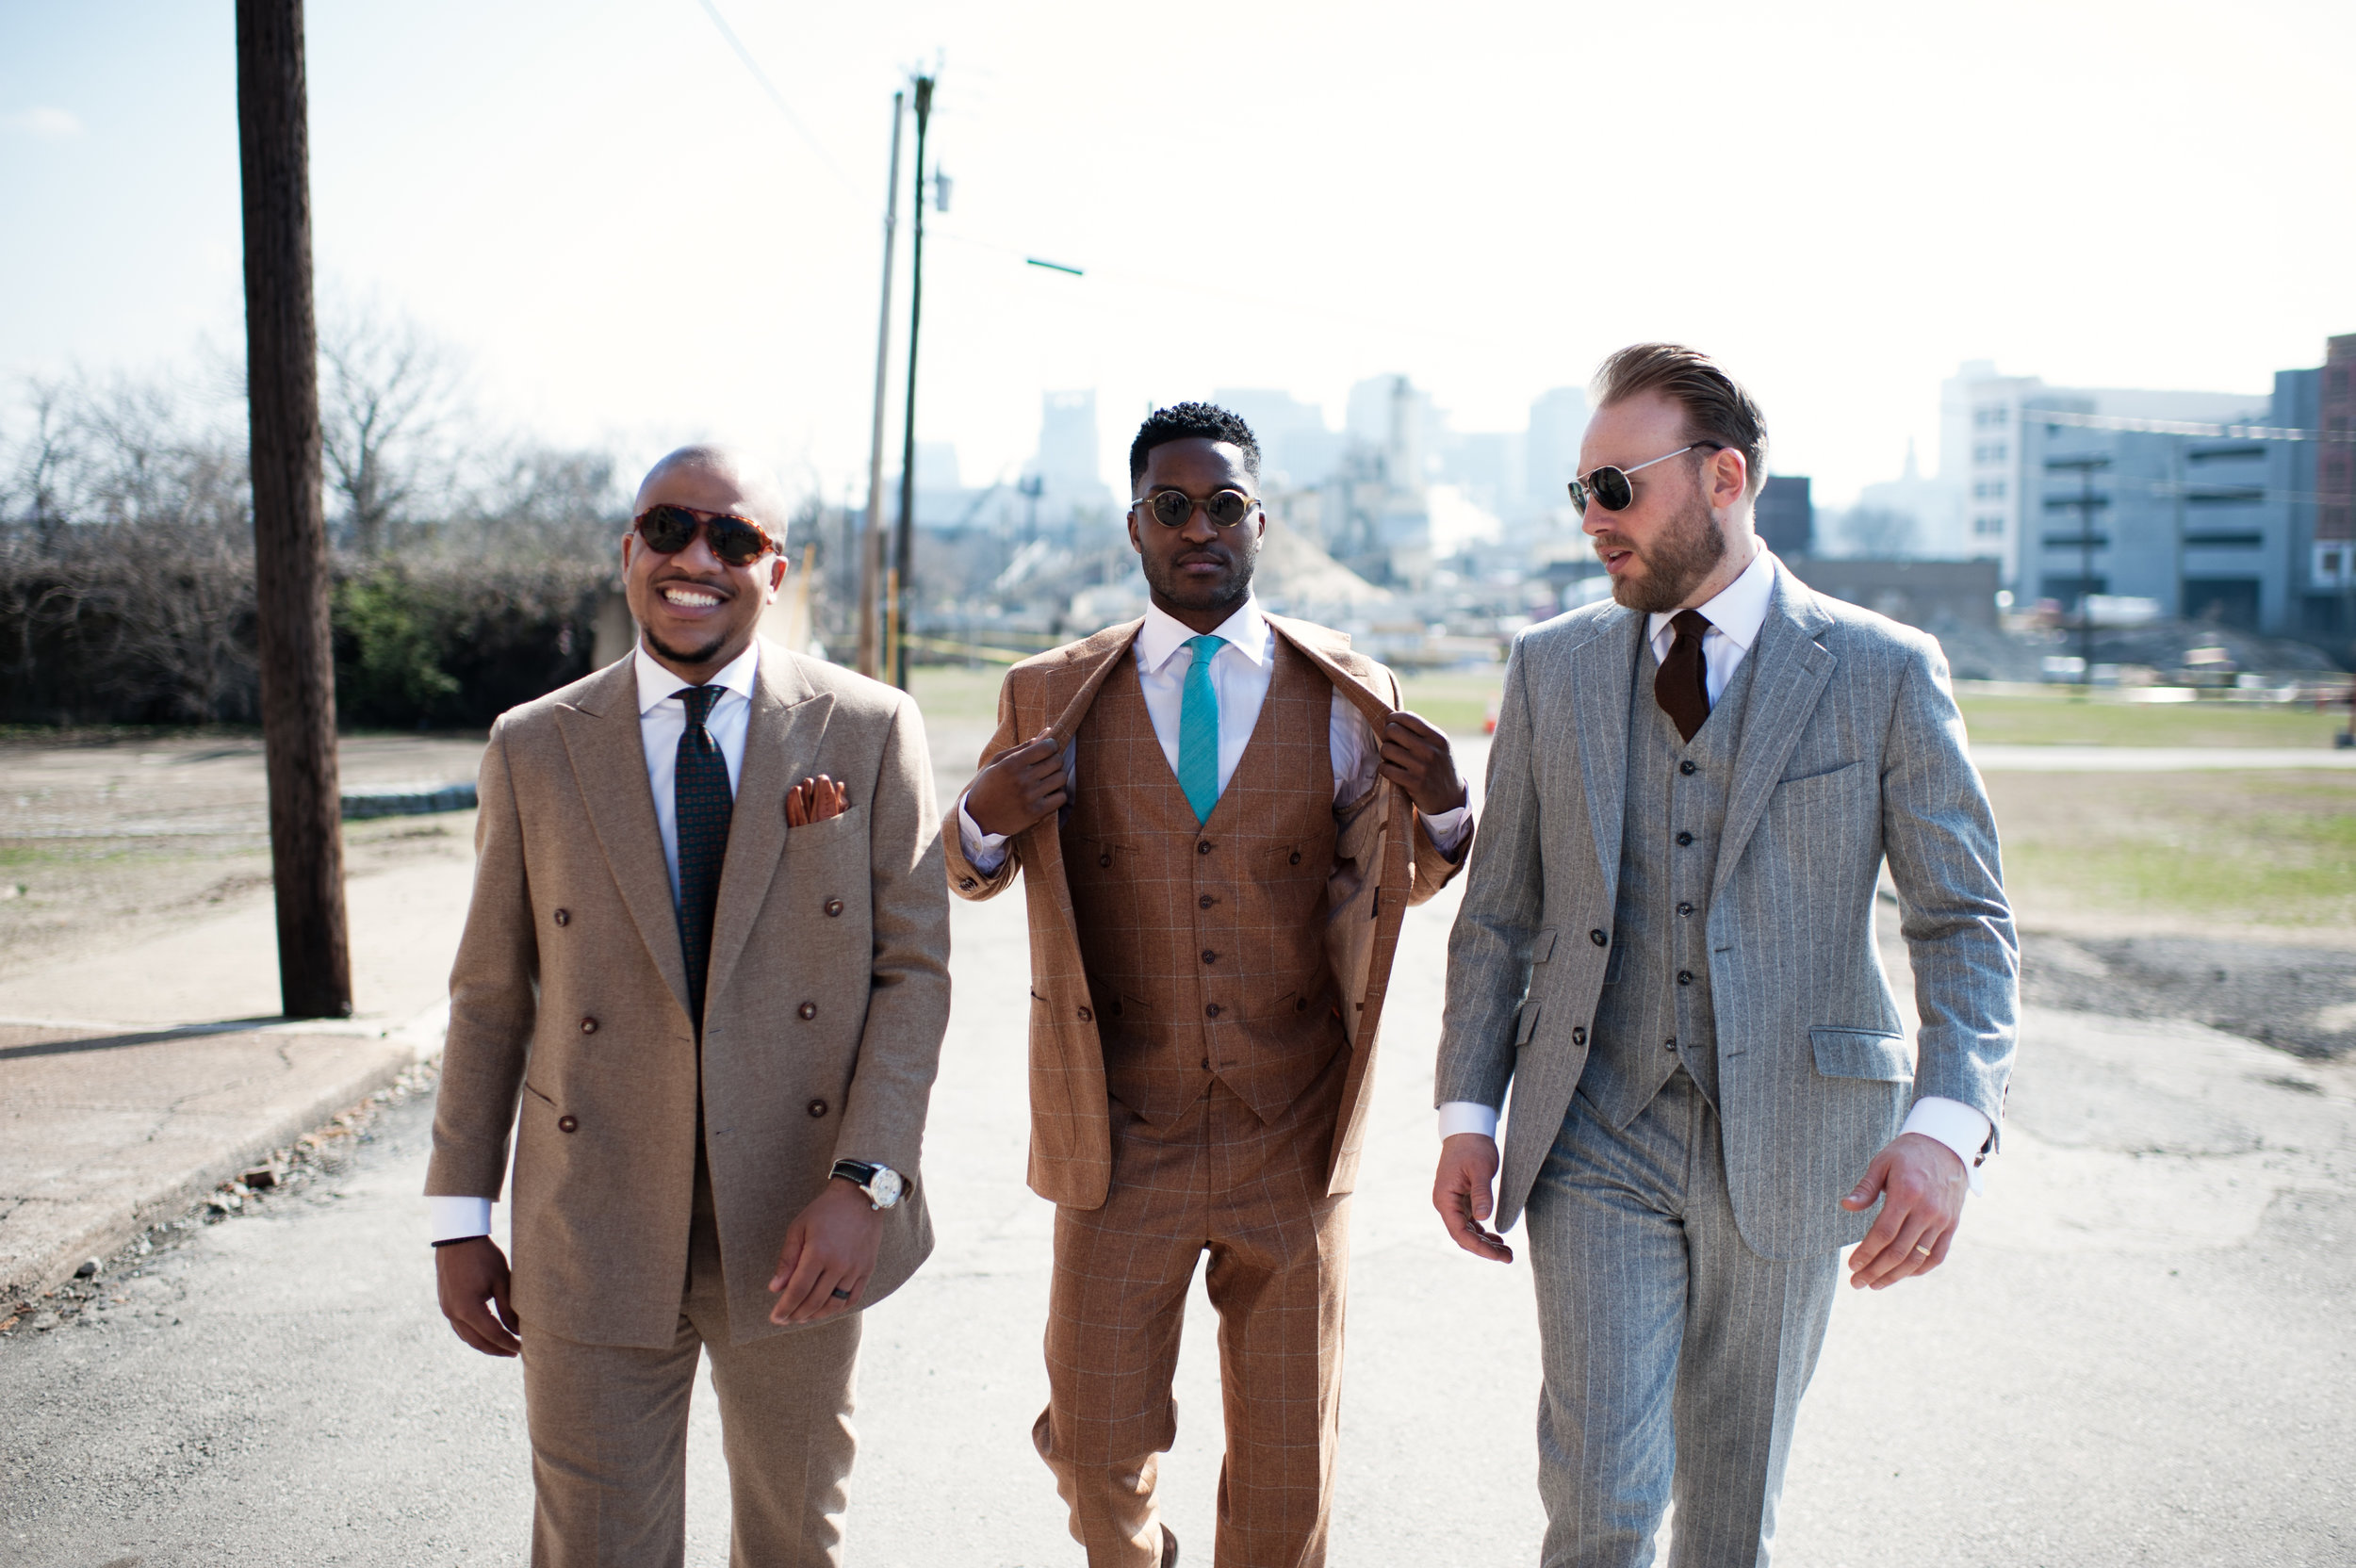 Stitch-it and co custom suits Nashville